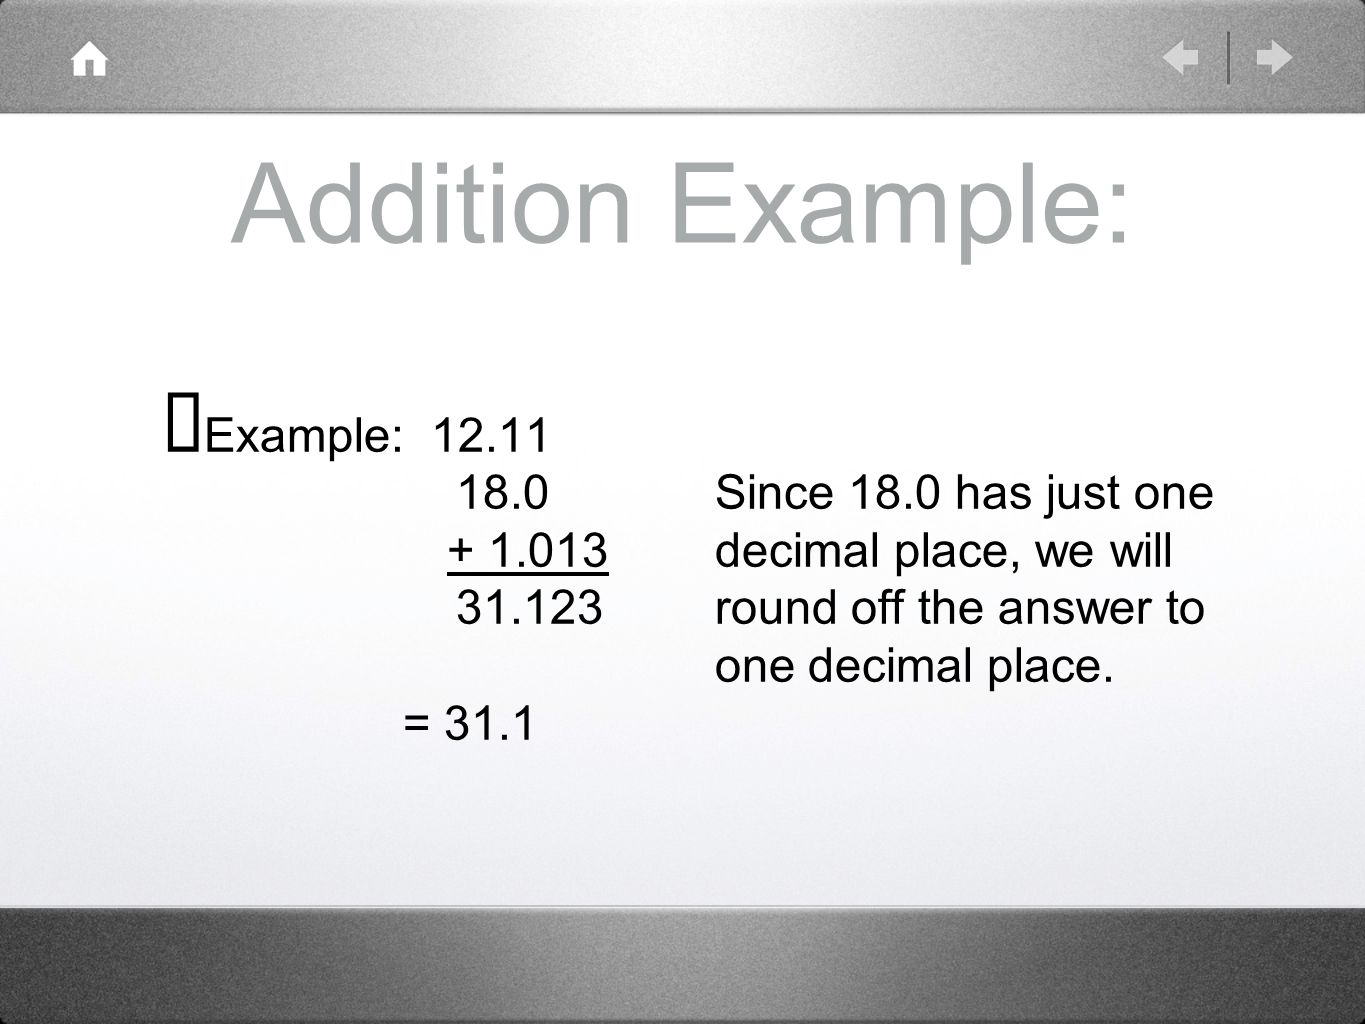 Addition Example: ➡ Example: Since 18.0 has just one decimal place, we will round off the answer to one decimal place.